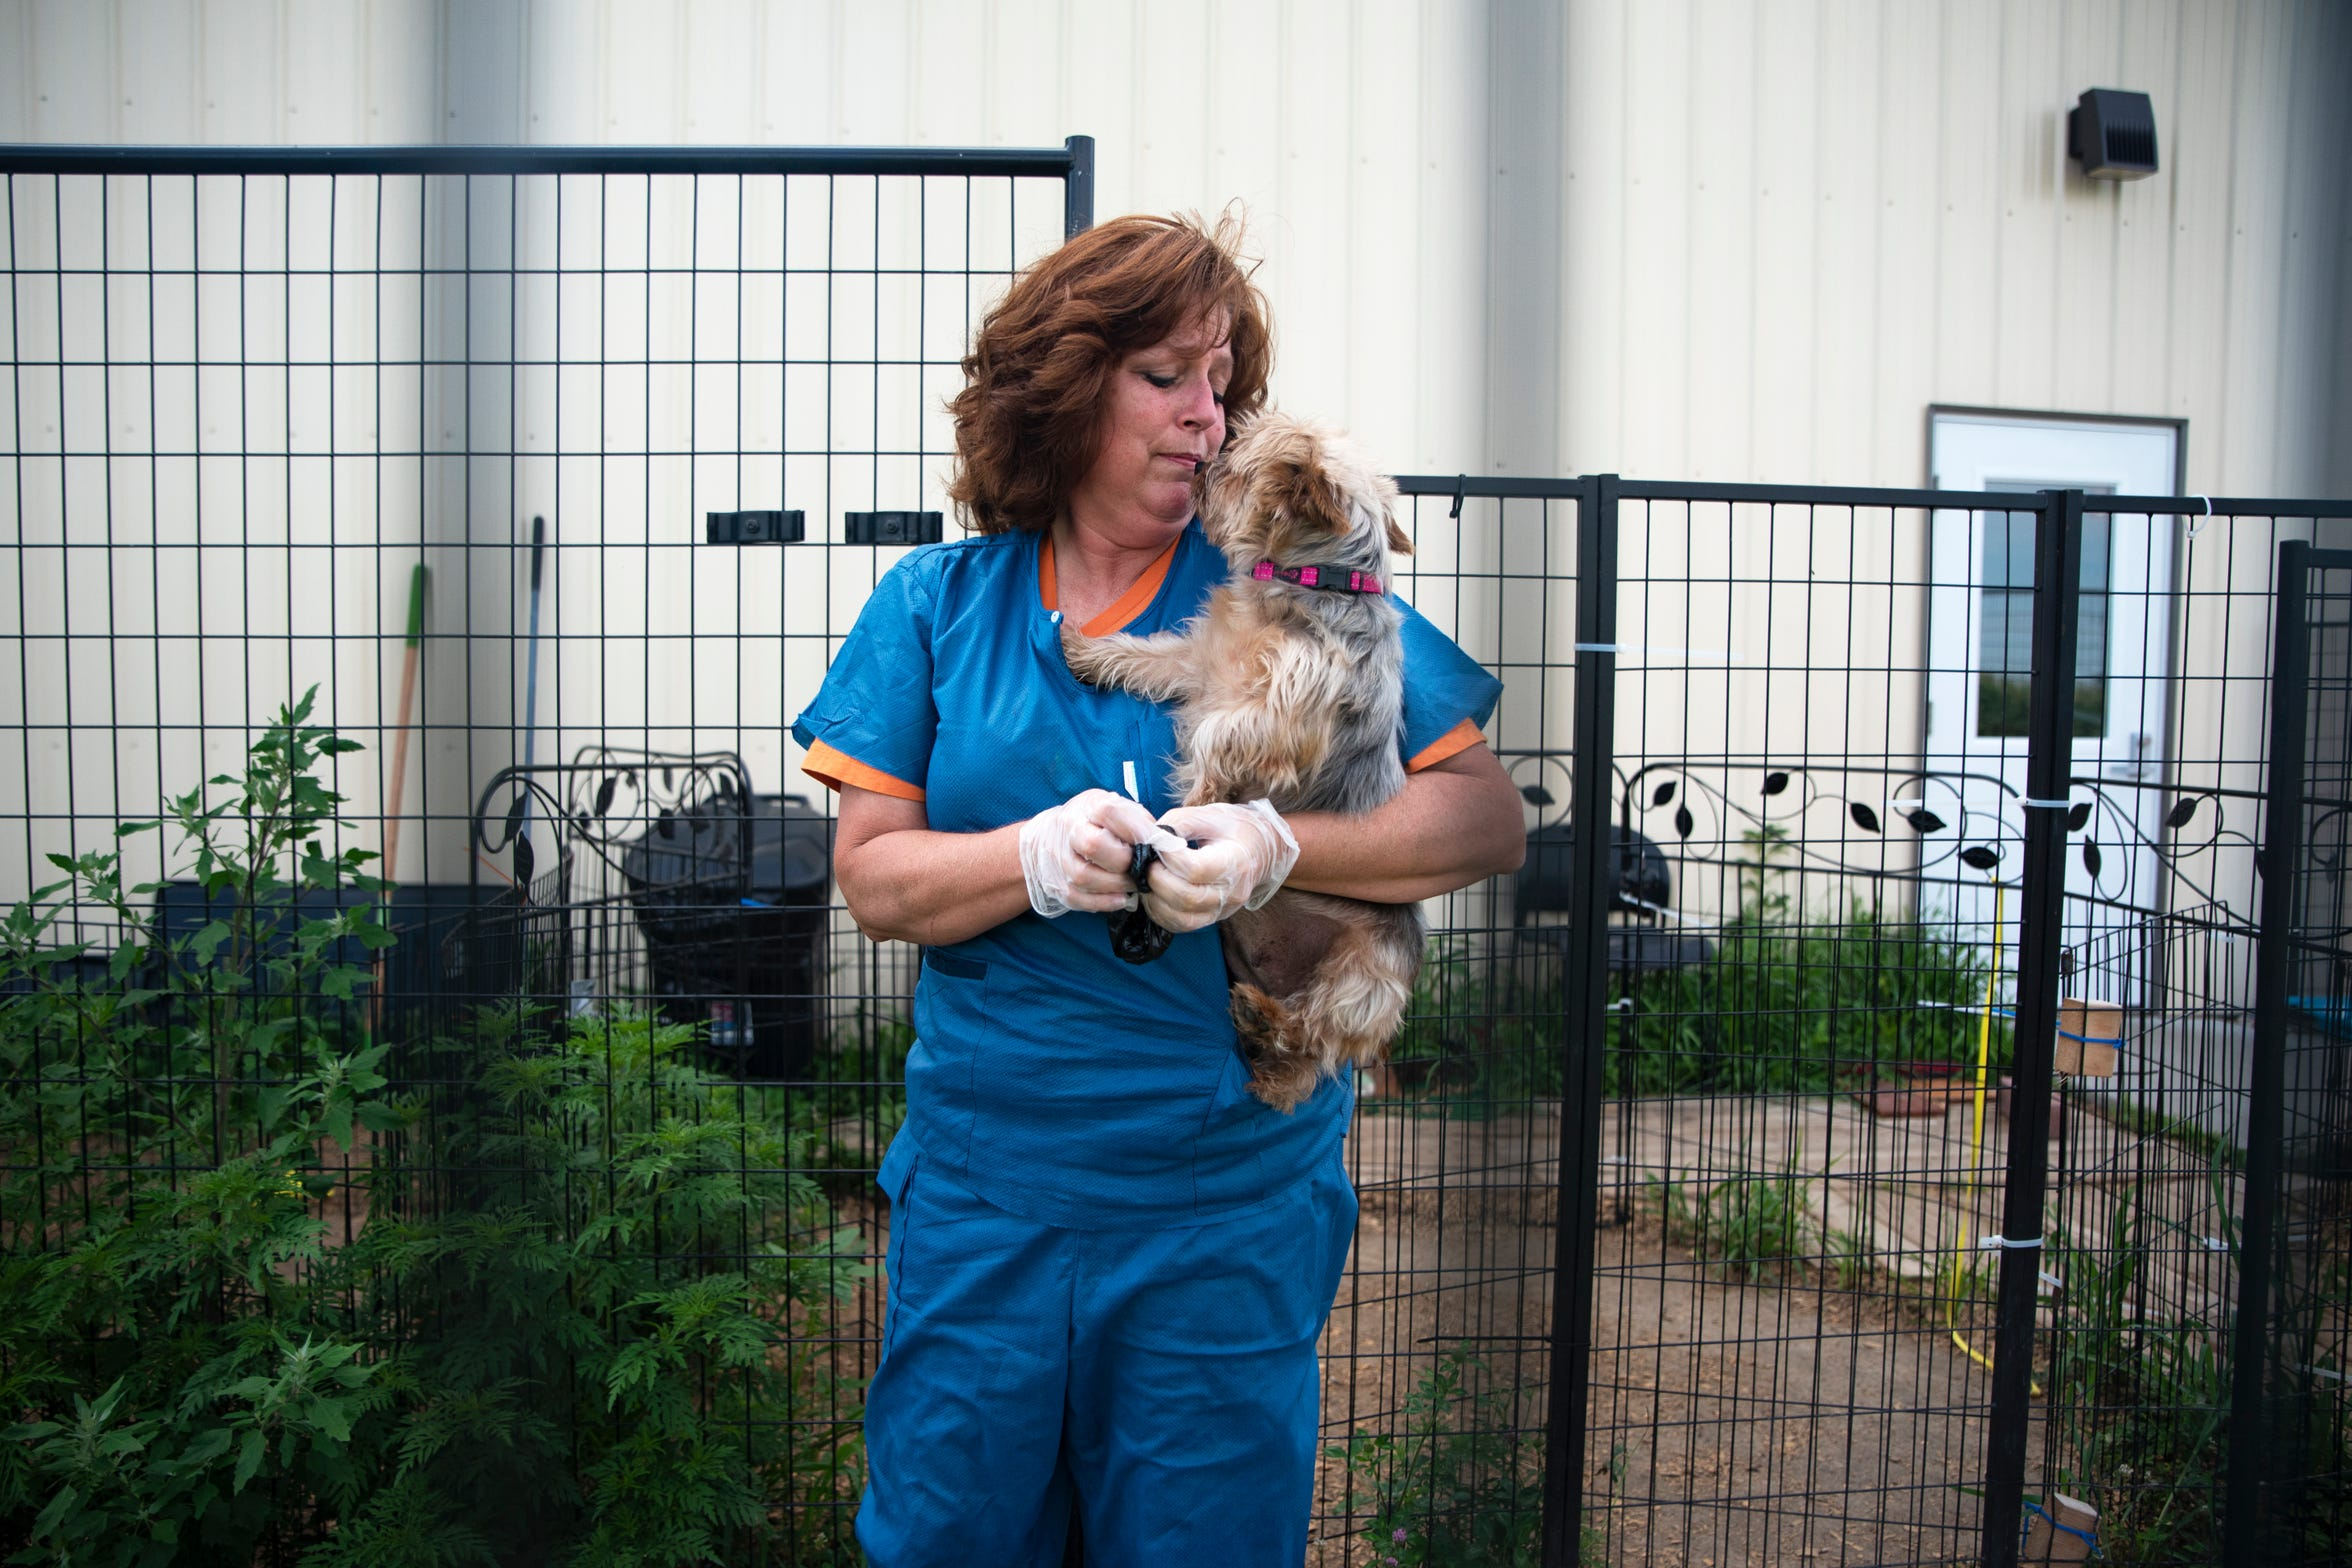 Amy Heinz holds Australian silver terrier Lady Abagail, 10, outside AHeinz57' Pet Rescue & Transport in De Soto, Iowa on August 1, 2019. Over 200 dogs were sold from a puppy mill in May, and Heinz bought 31 of them to find them each rescue homes. Despite no official diagnoses, Lady is one of 31 dogs quarantined for almost three months due to possible risks of spreading canine brucellosis.